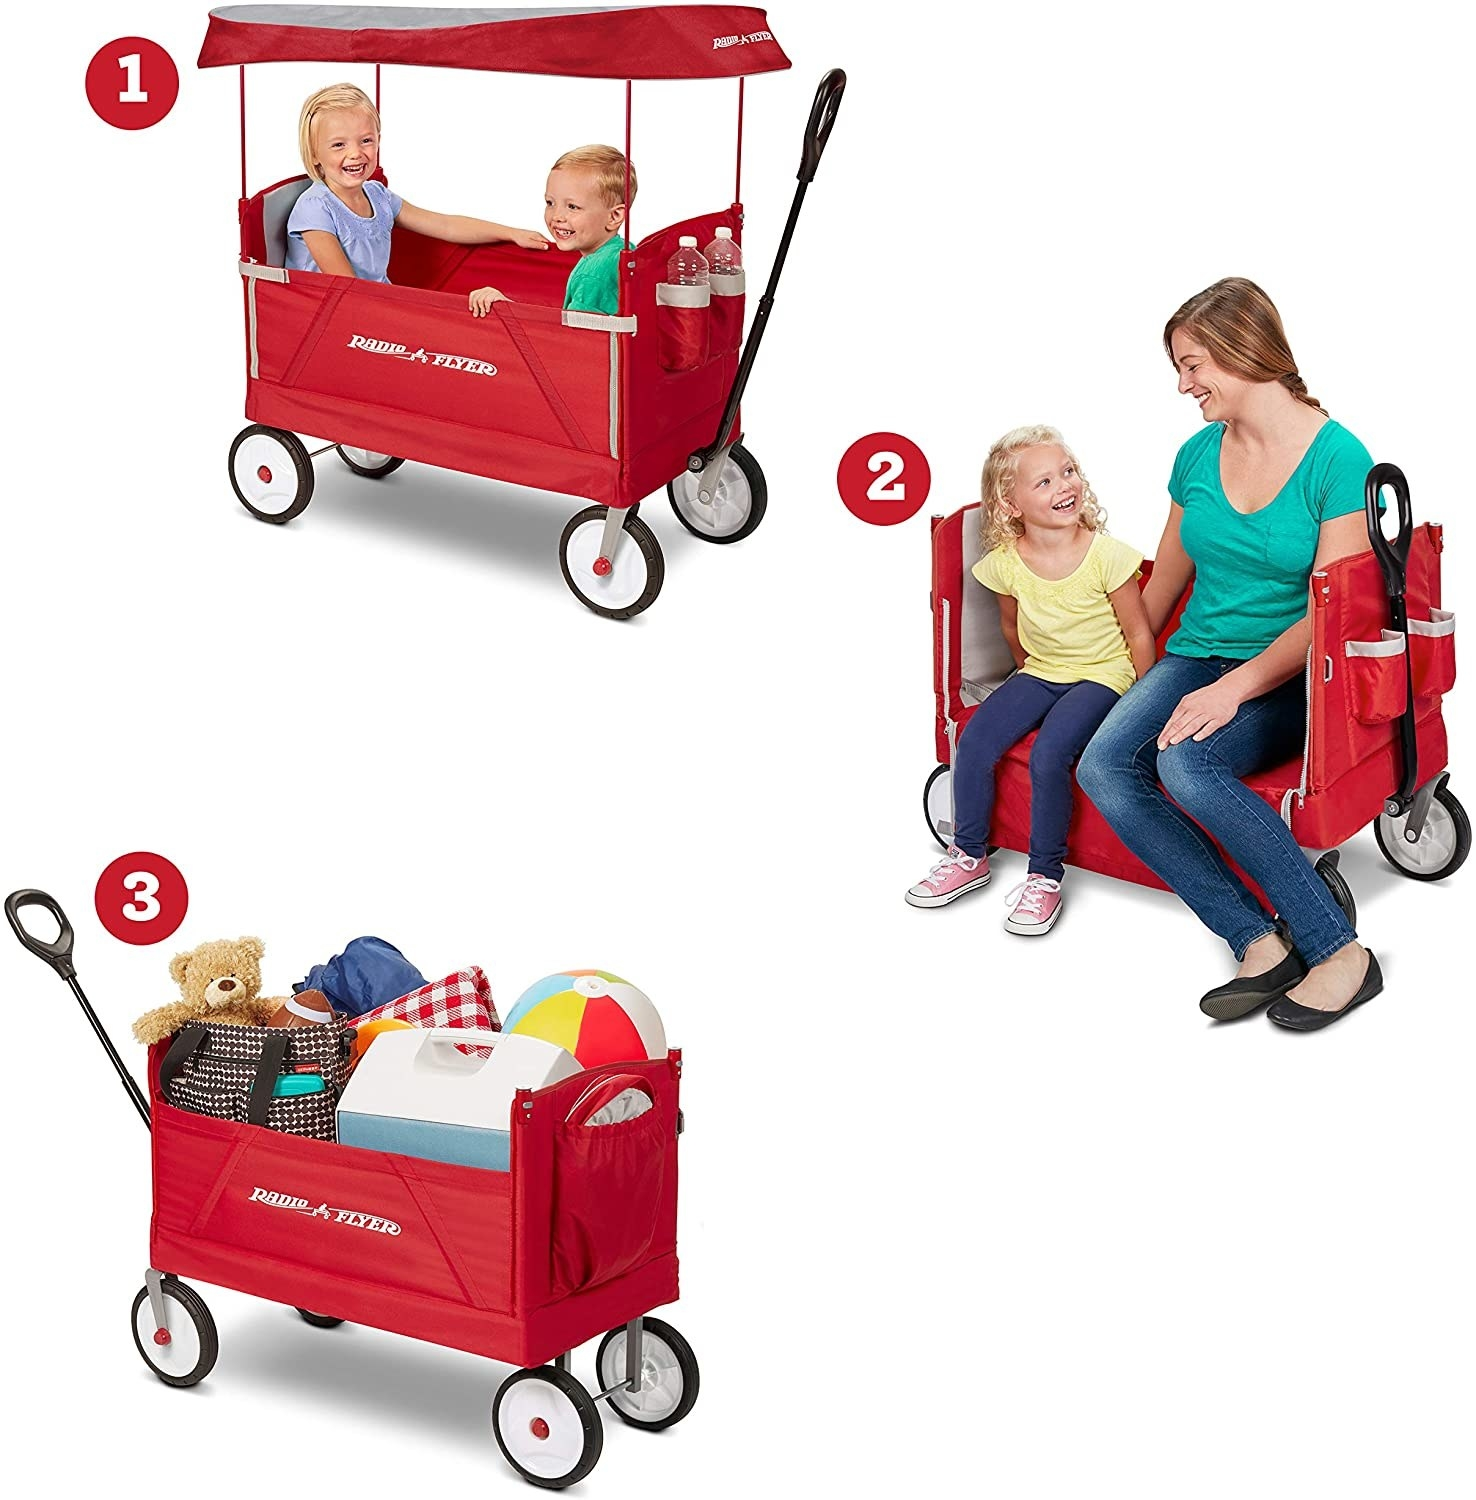 a graphic showing the three different ways the wagon can be used